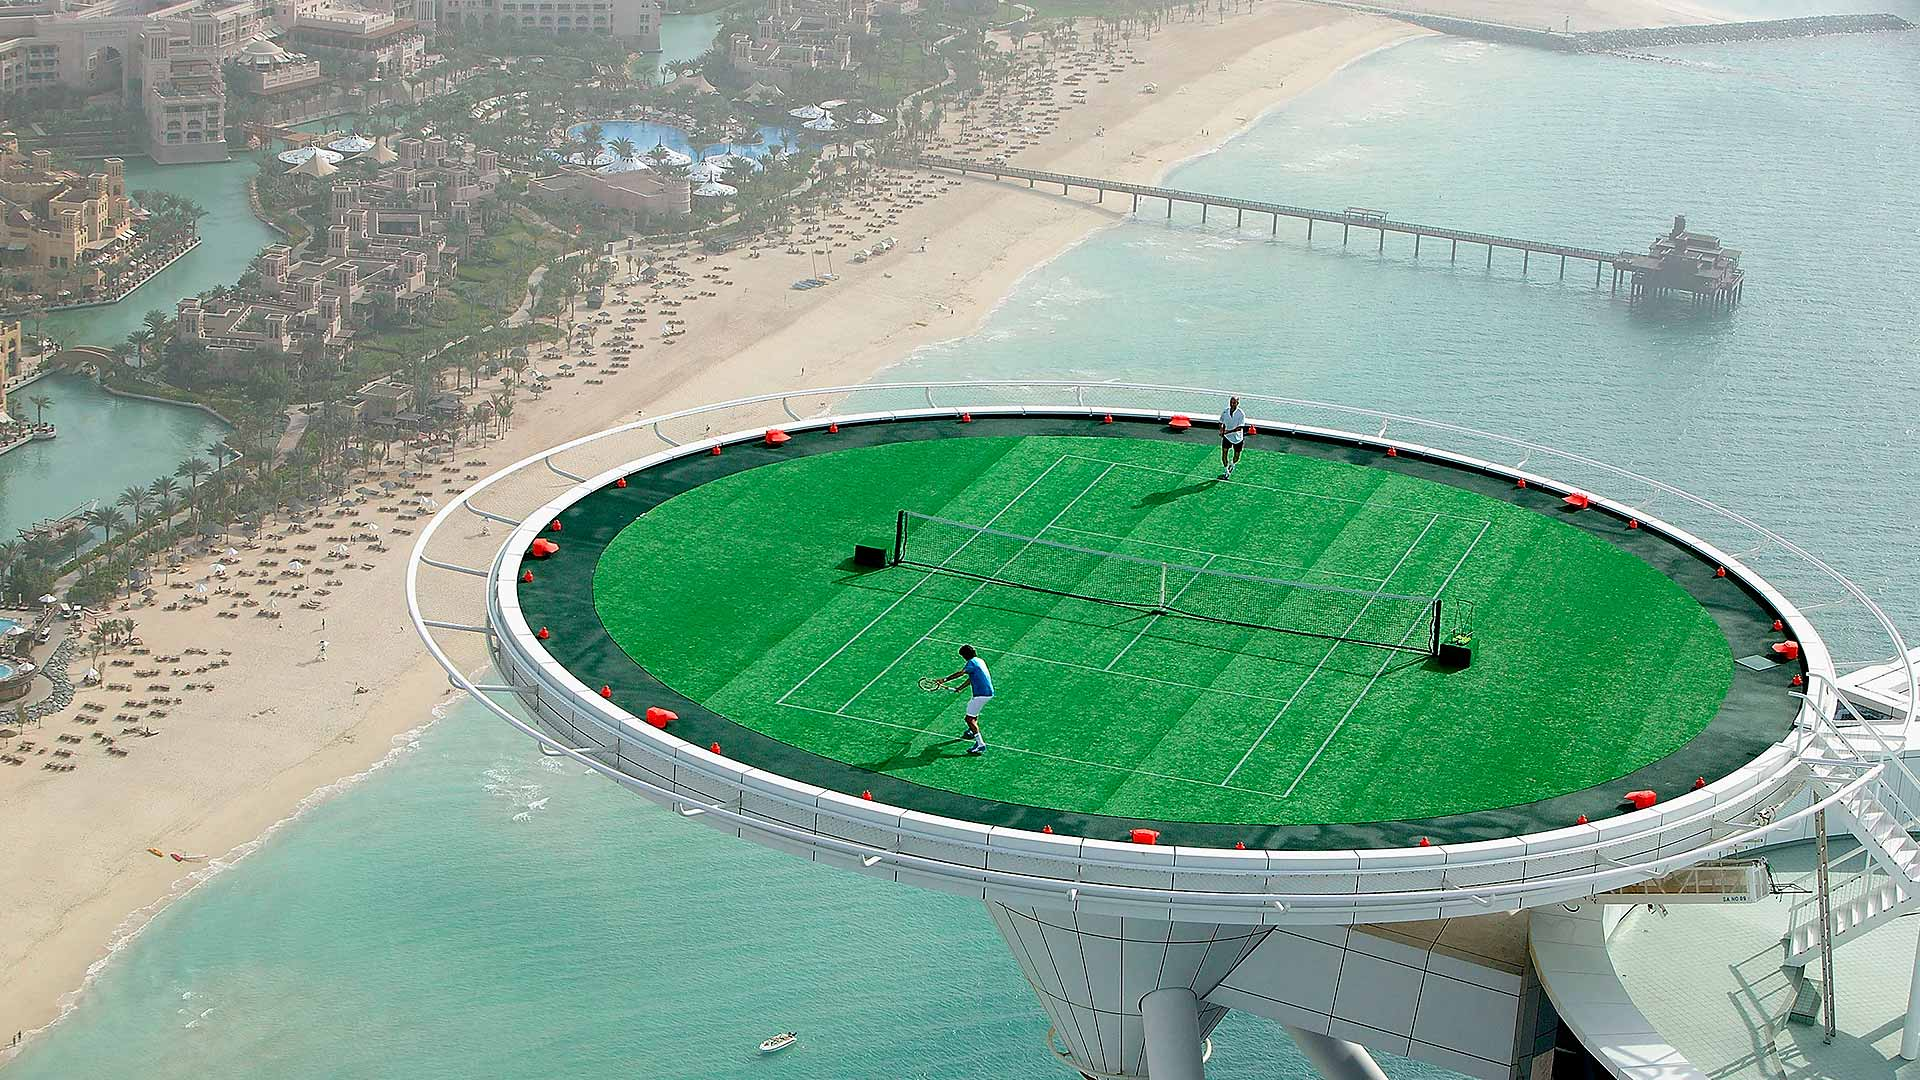 Roger Federer and Andre Agassi have a friendly 'hit' on the helipad of the Burj Al Arab ahead of the 2005 Dubai Duty Free Men's Championship.